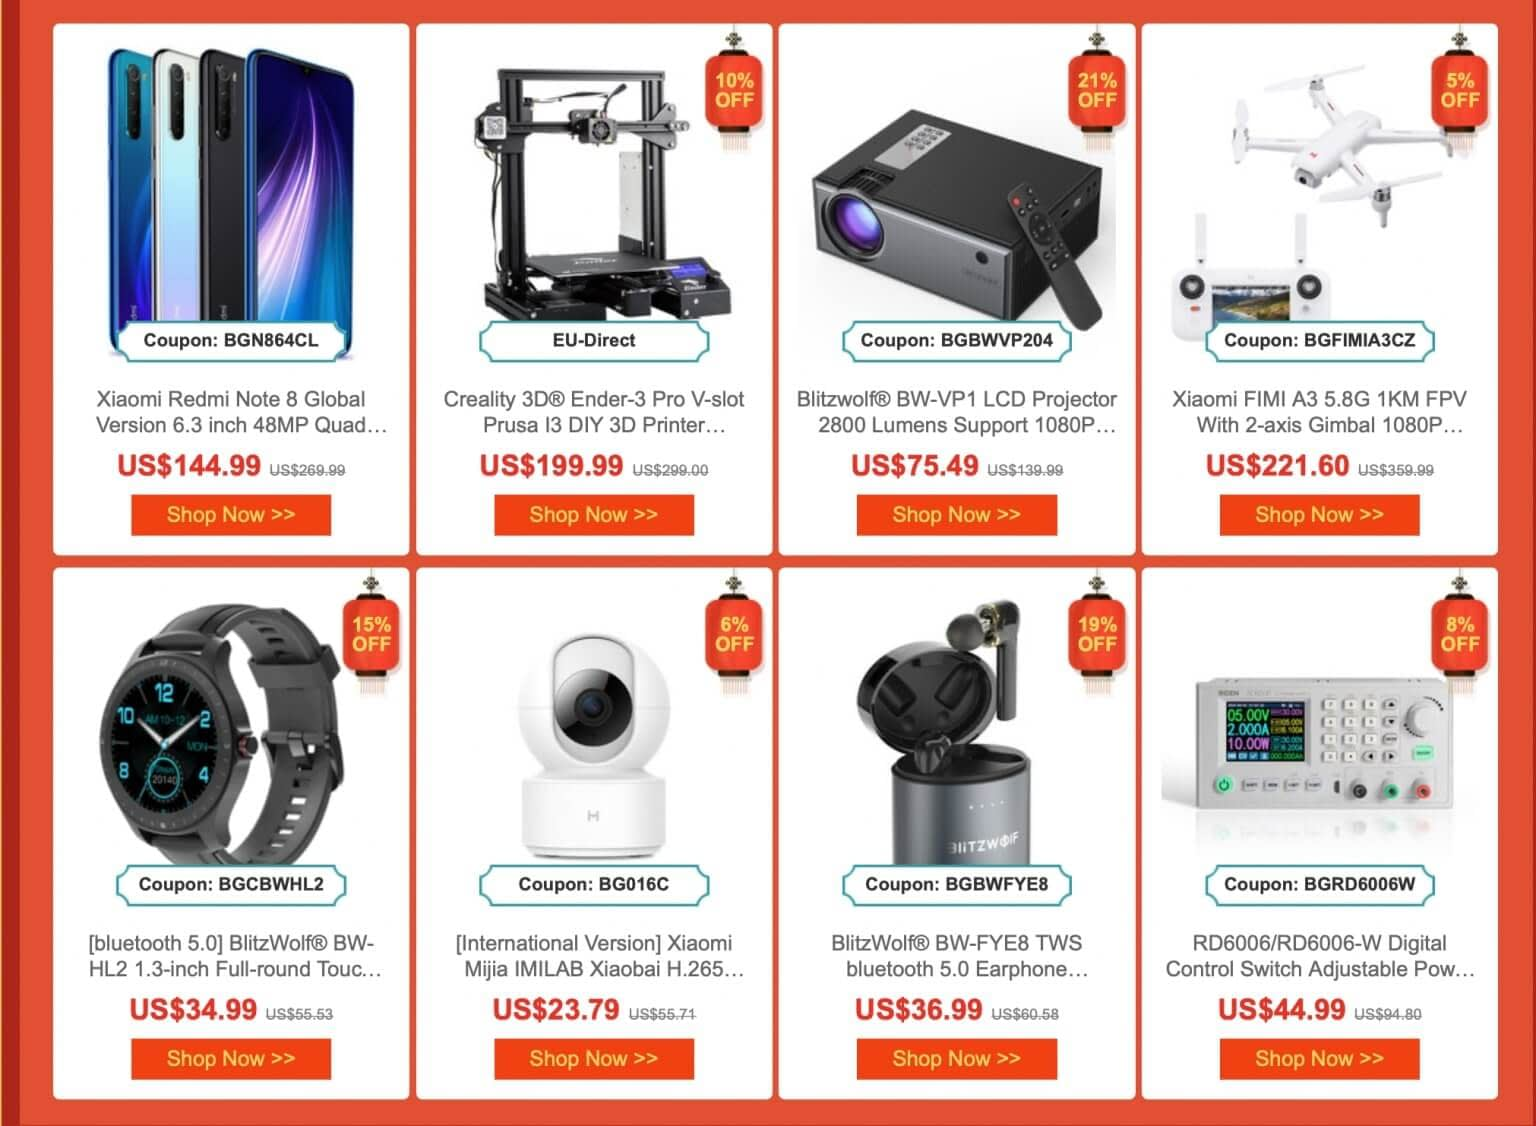 Chinese New Year Festival Deals 2020